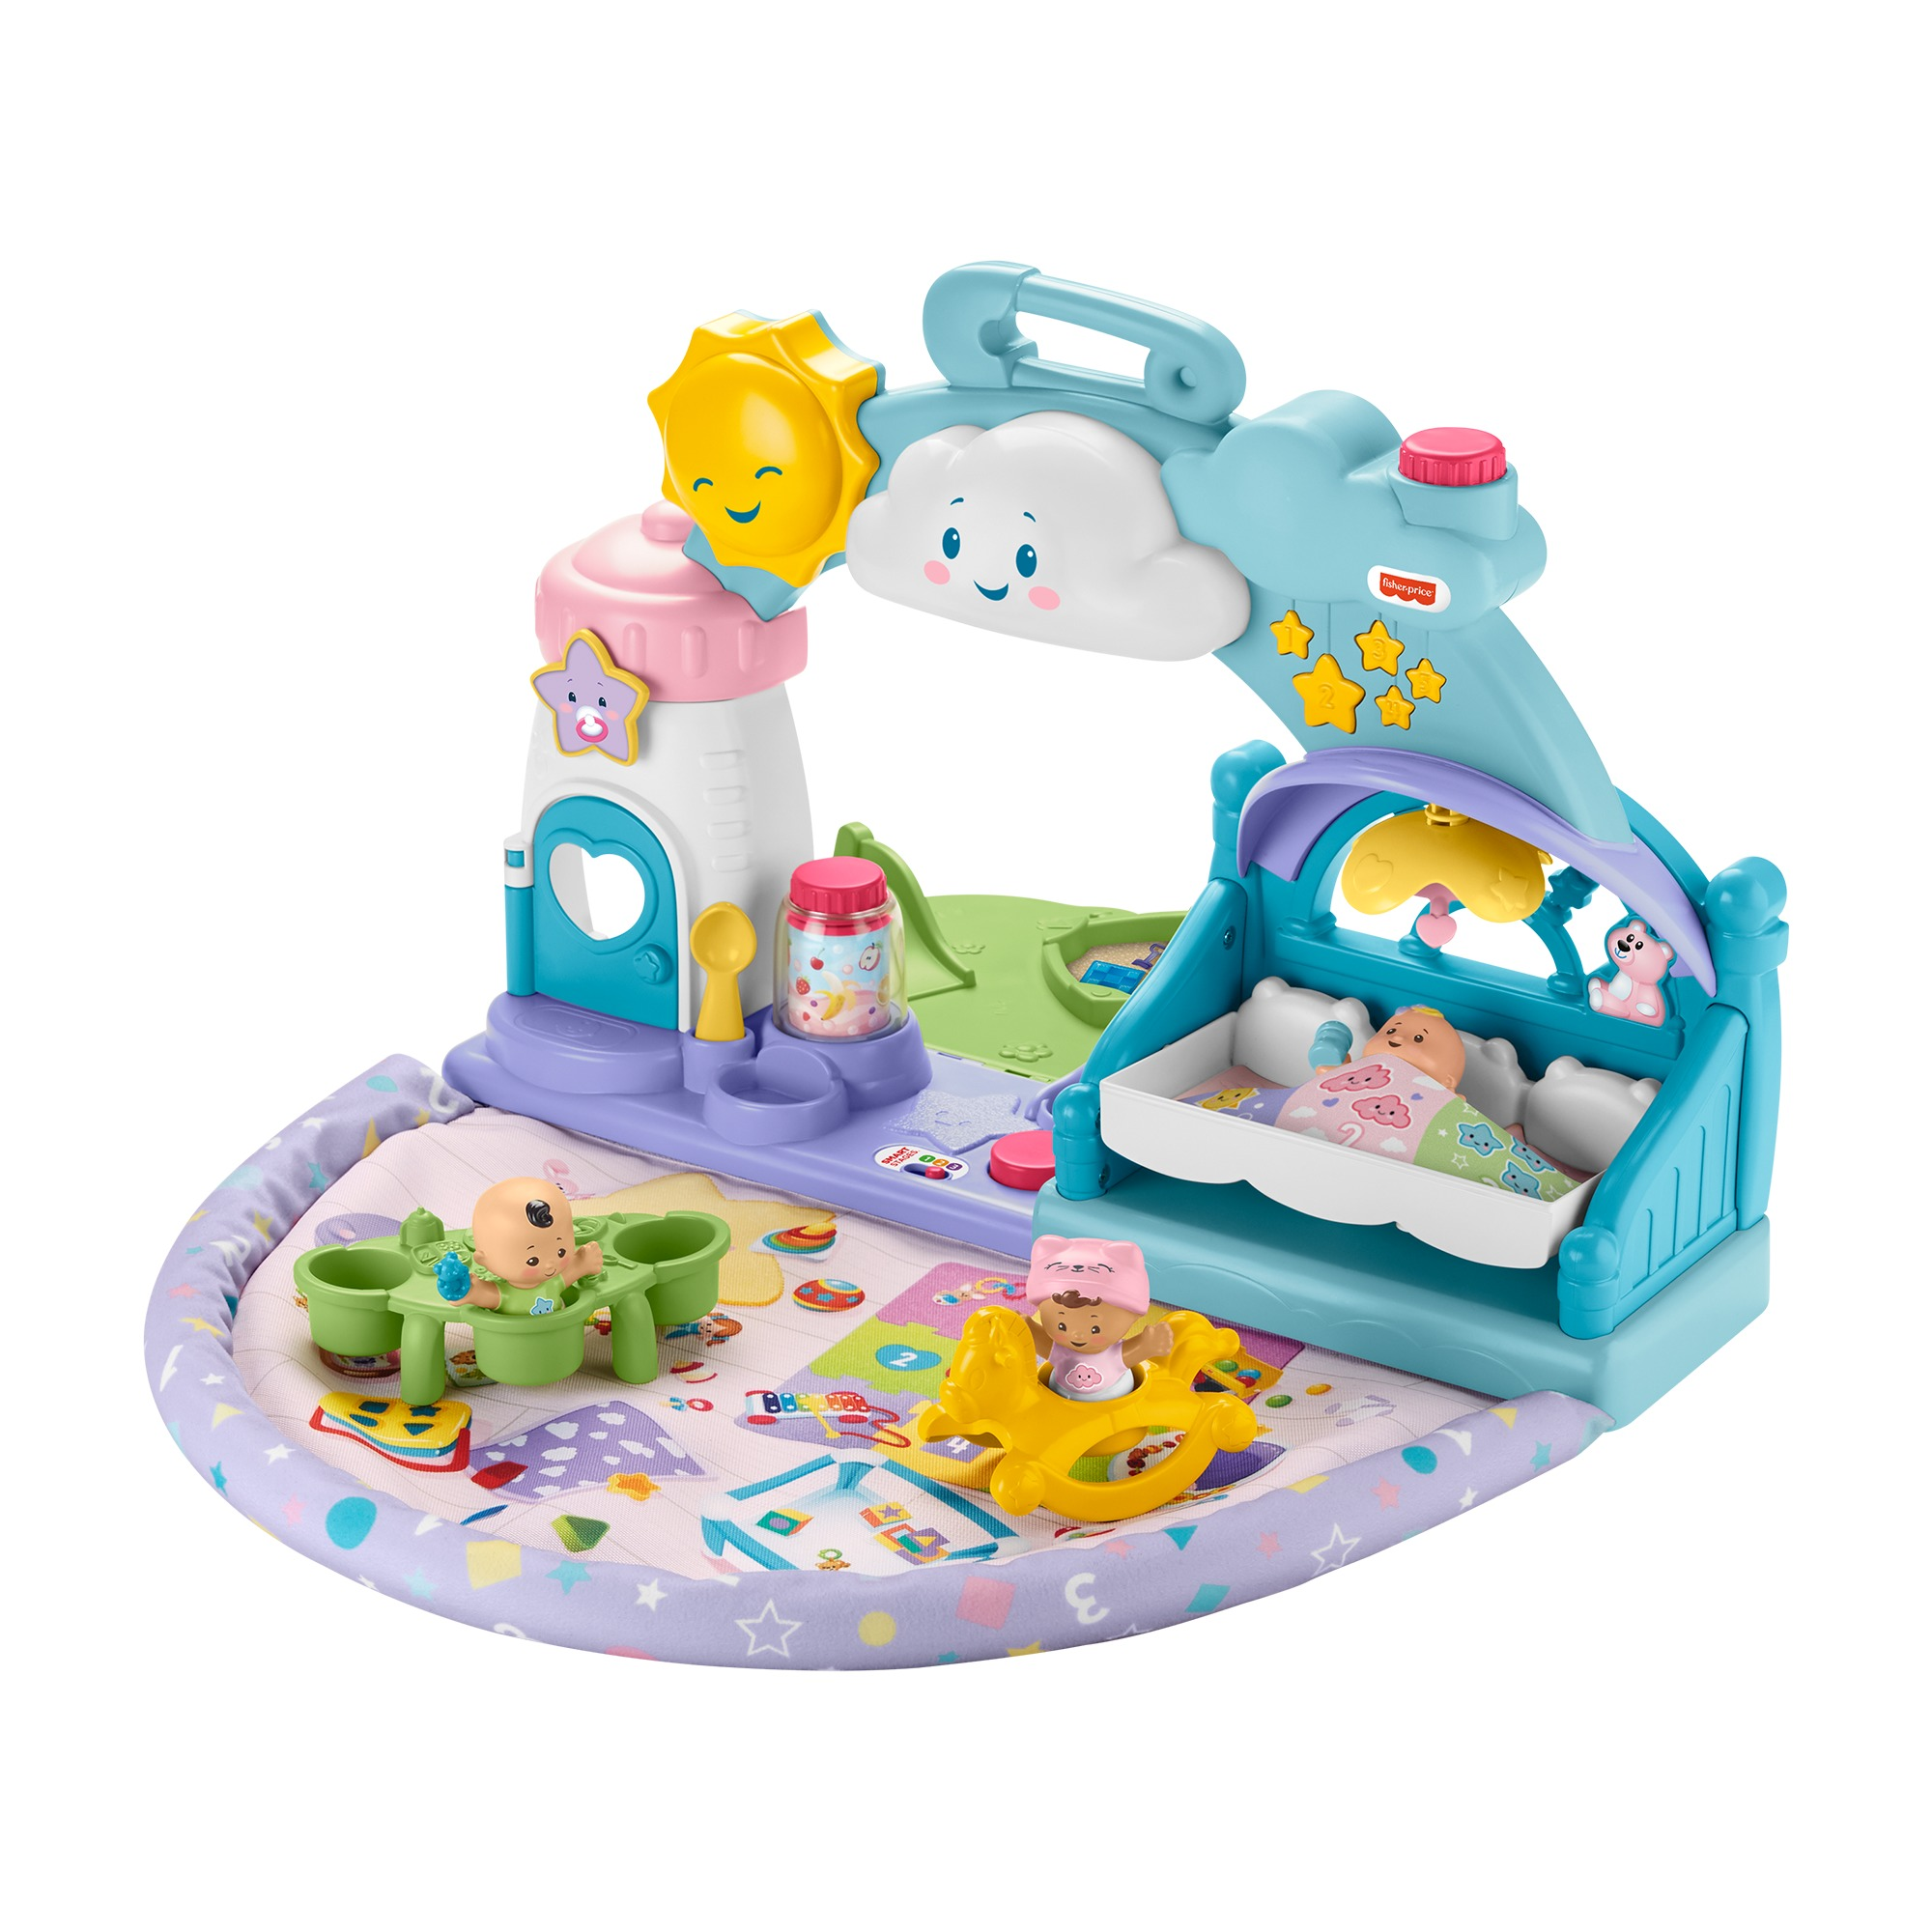 Fisher-Price Little People 1-2-3 Babies Playdate Musical Playset with 3 Multi-color Baby Dolls (Walmart)